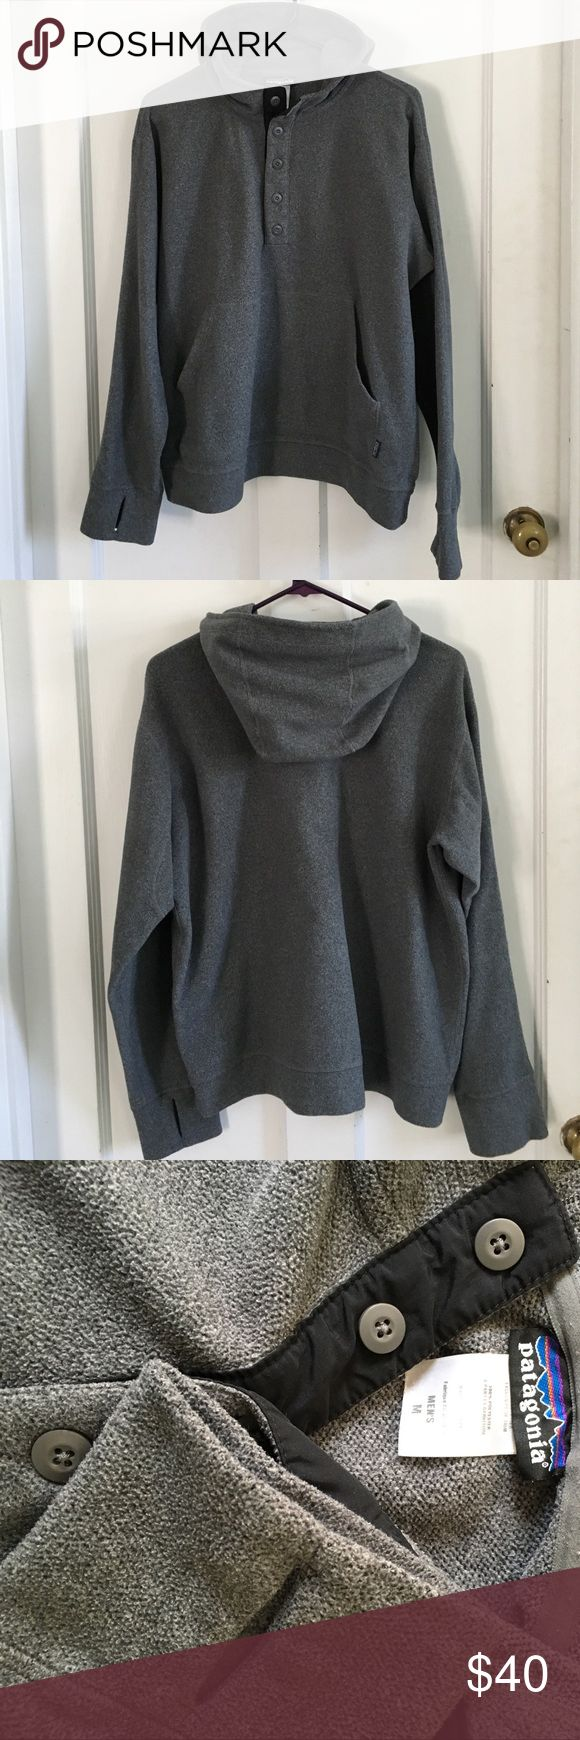 Patagonia Men's Pullover Sweater In Good condition Pullover sweater with hood, thumbs holes and half button front. Great for those cool summer days 🌤 Patagonia Sweaters